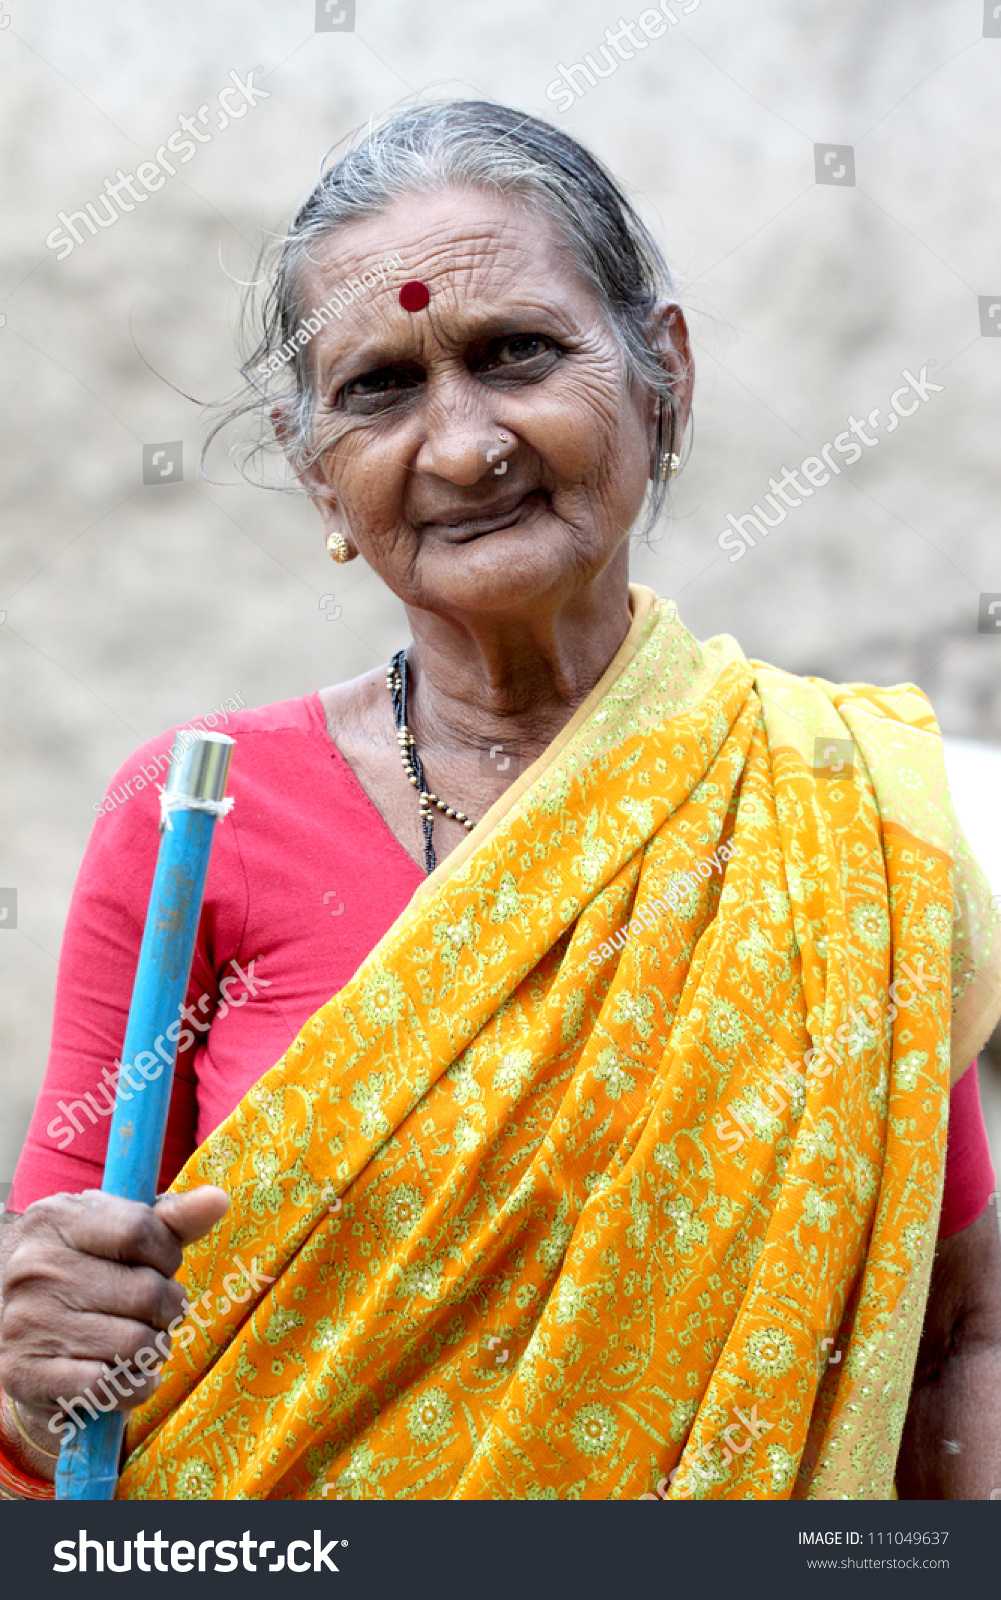 Portrait Indian Old Woman Stock Photo 111049637 - Shutterstock-2568